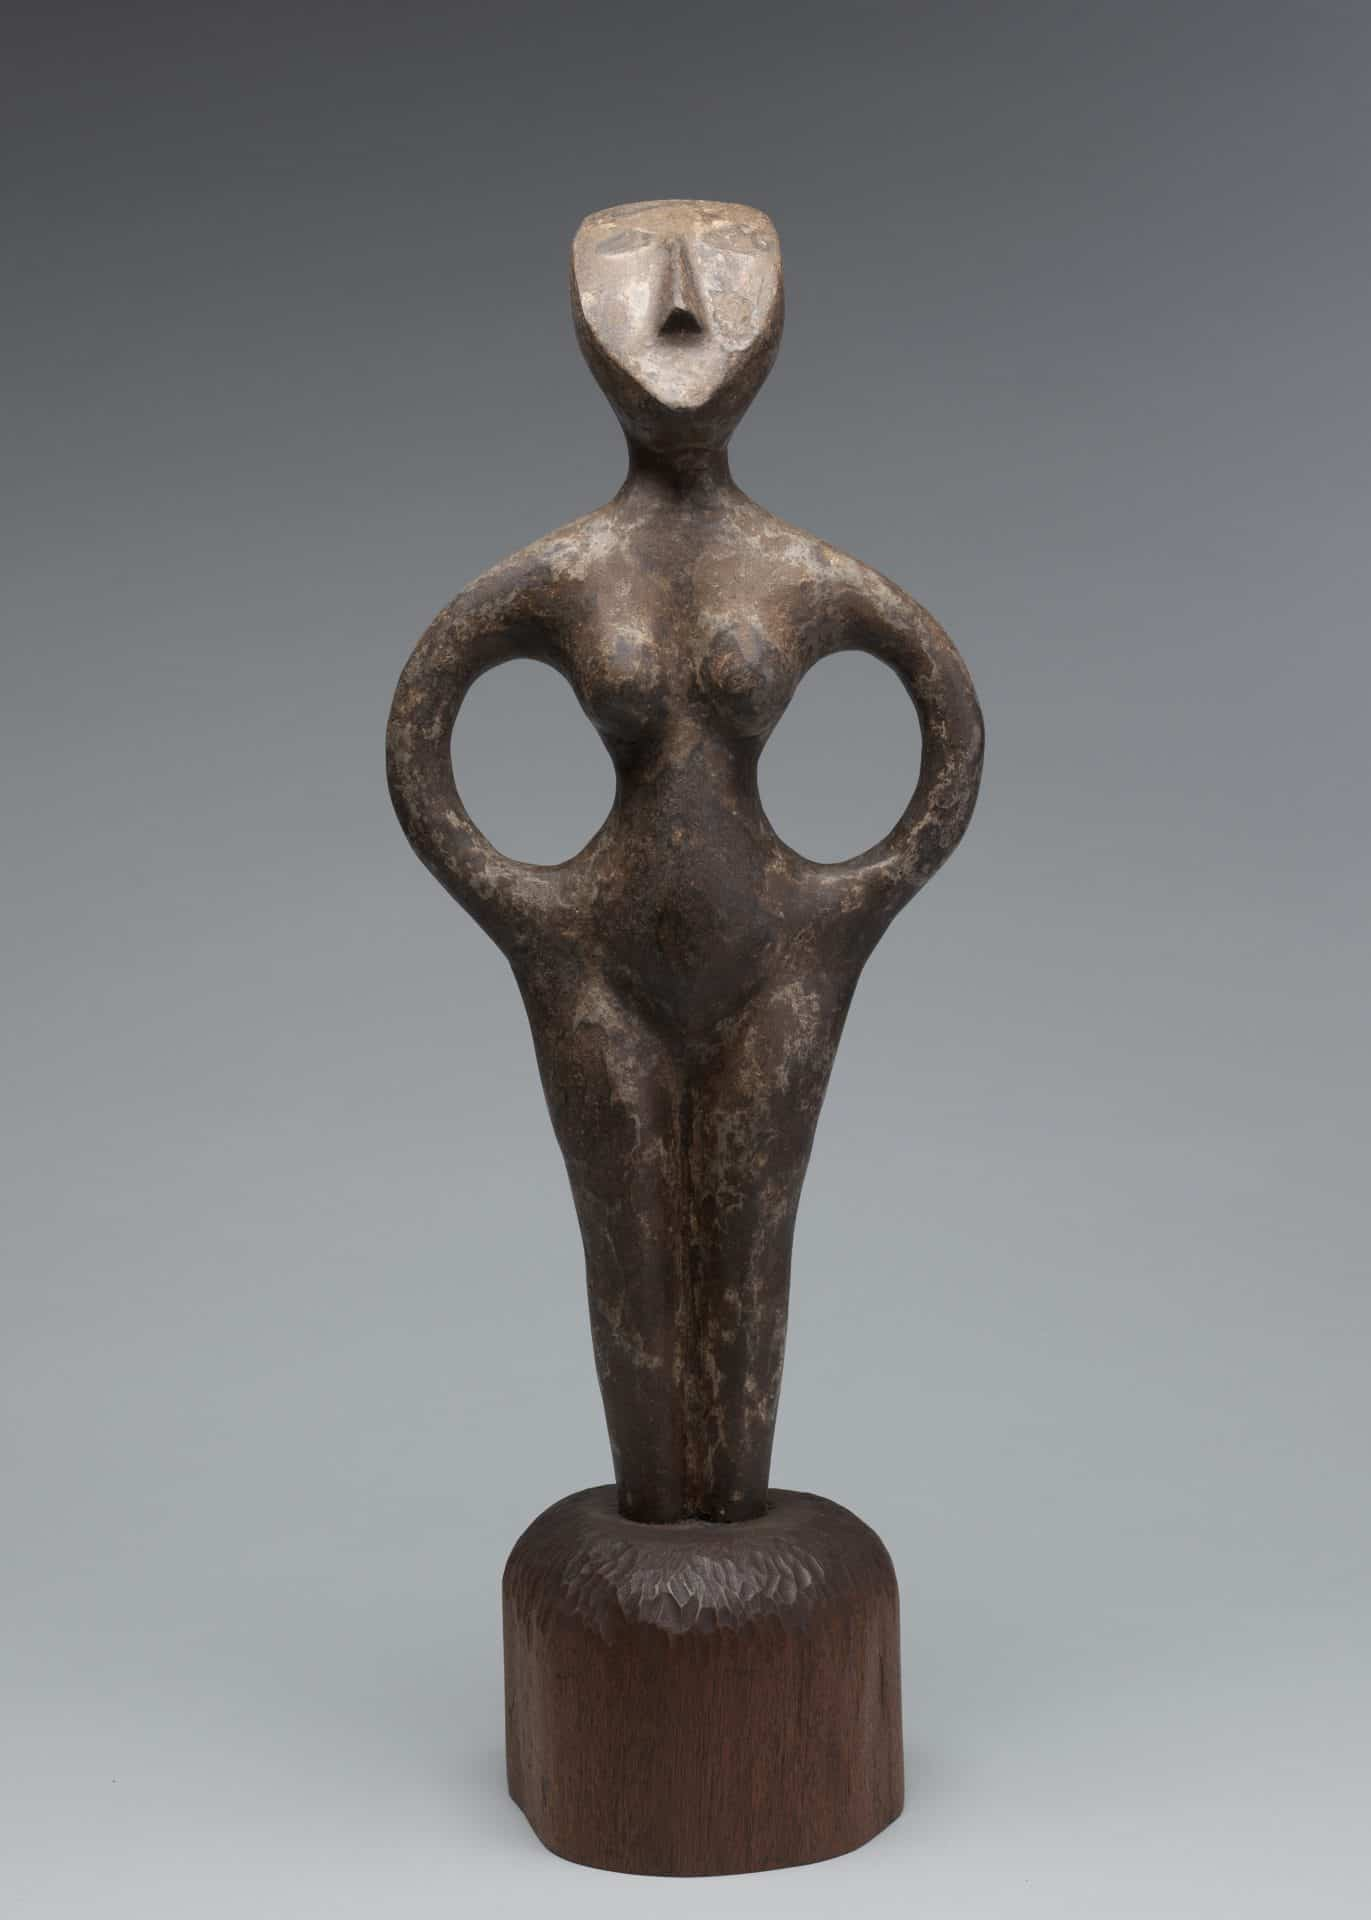 Cycladic_figure_01_a